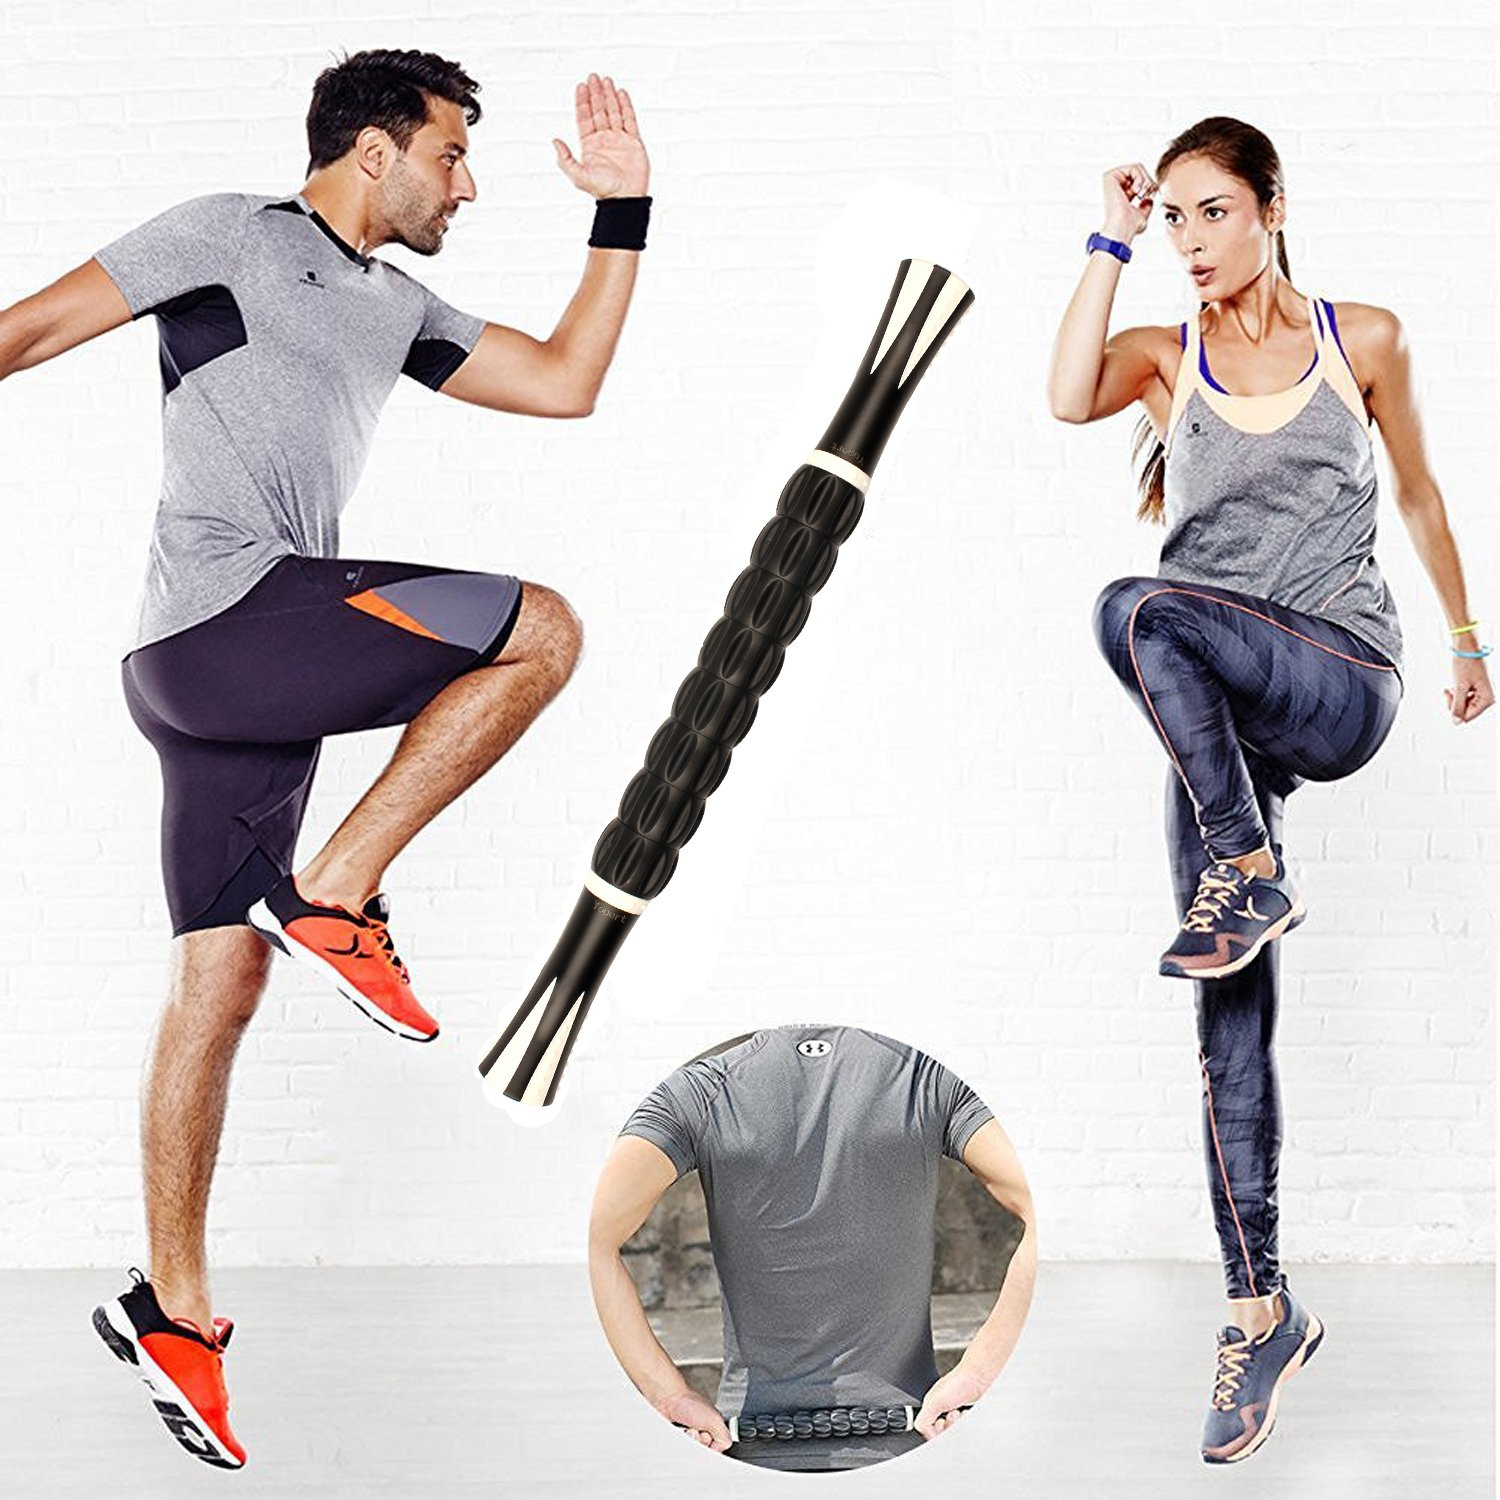 Yoport Muscle Roller Stick, Muscle Massage Roller Tool with Anti Slip Handle for Athlete Runner Releasing Myofascial Trigger Points, Reducing Muscle Soreness, Soothing Cramps and Relieving Muscle Pain by Yoport (Image #5)